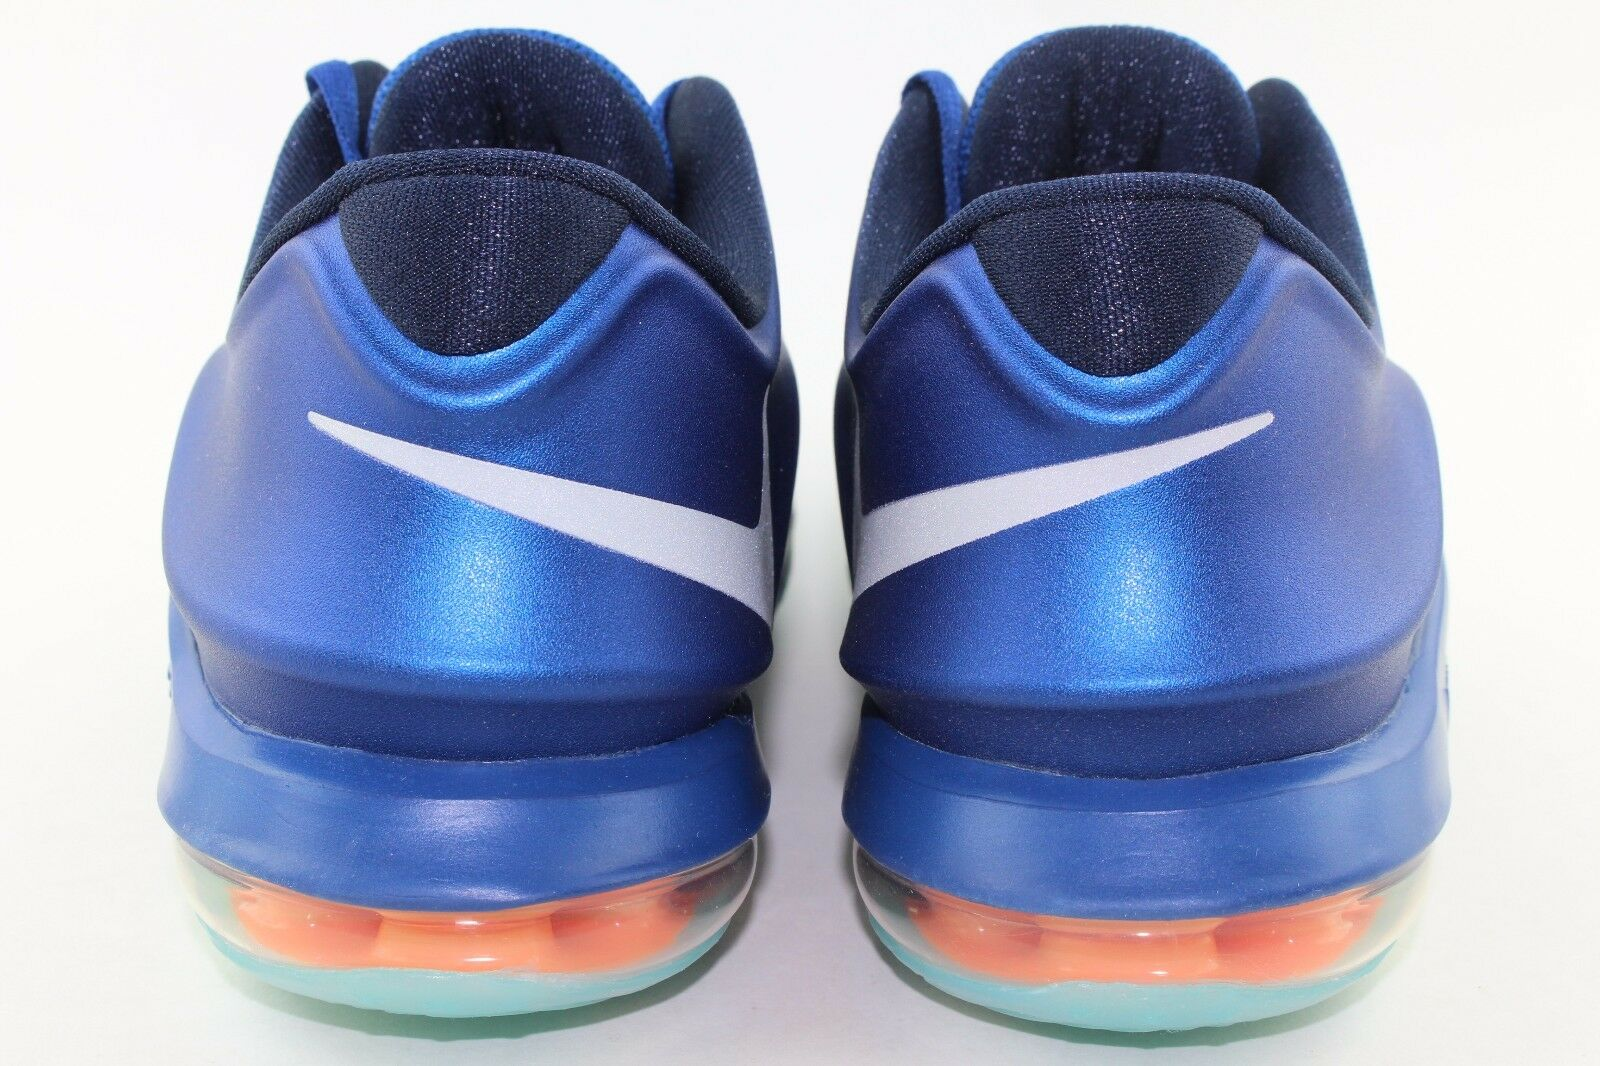 KD KD KD VII (7)  GYM blueE  YOUTH SZ  4.5 SAME AS WOMAN 6.0 NEW AUTHENTIC SUPER RARE ce6faf